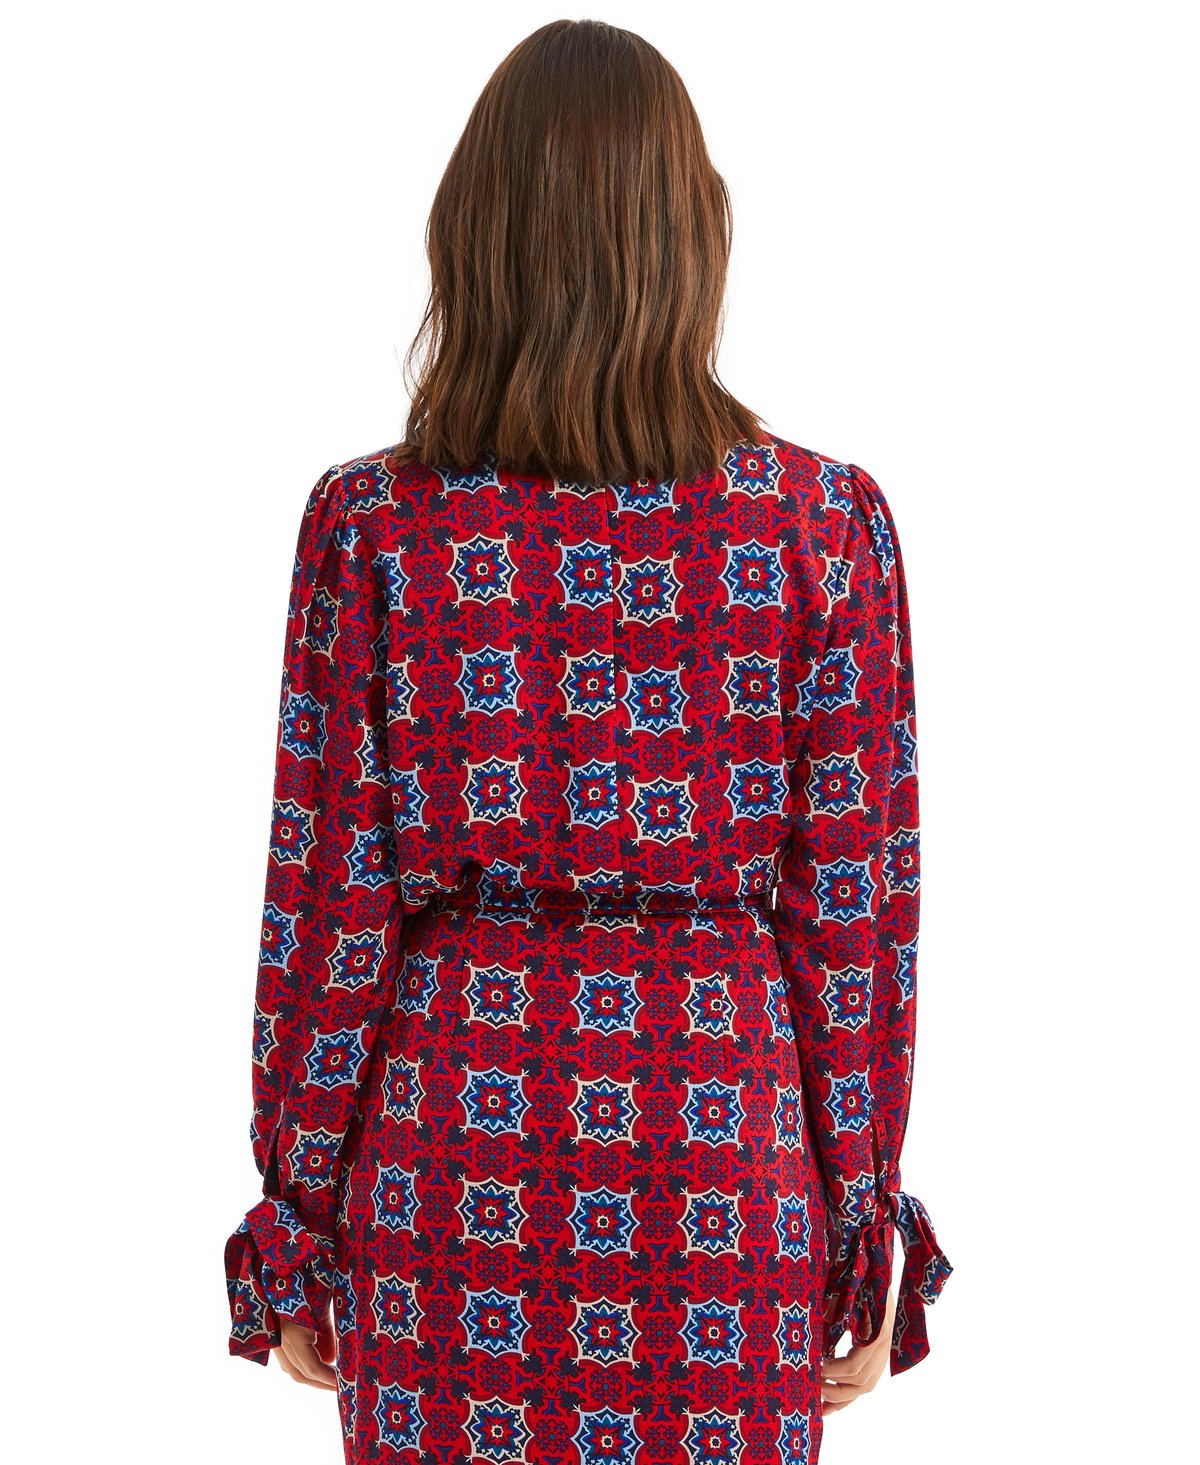 Kaleidoscope Blouse